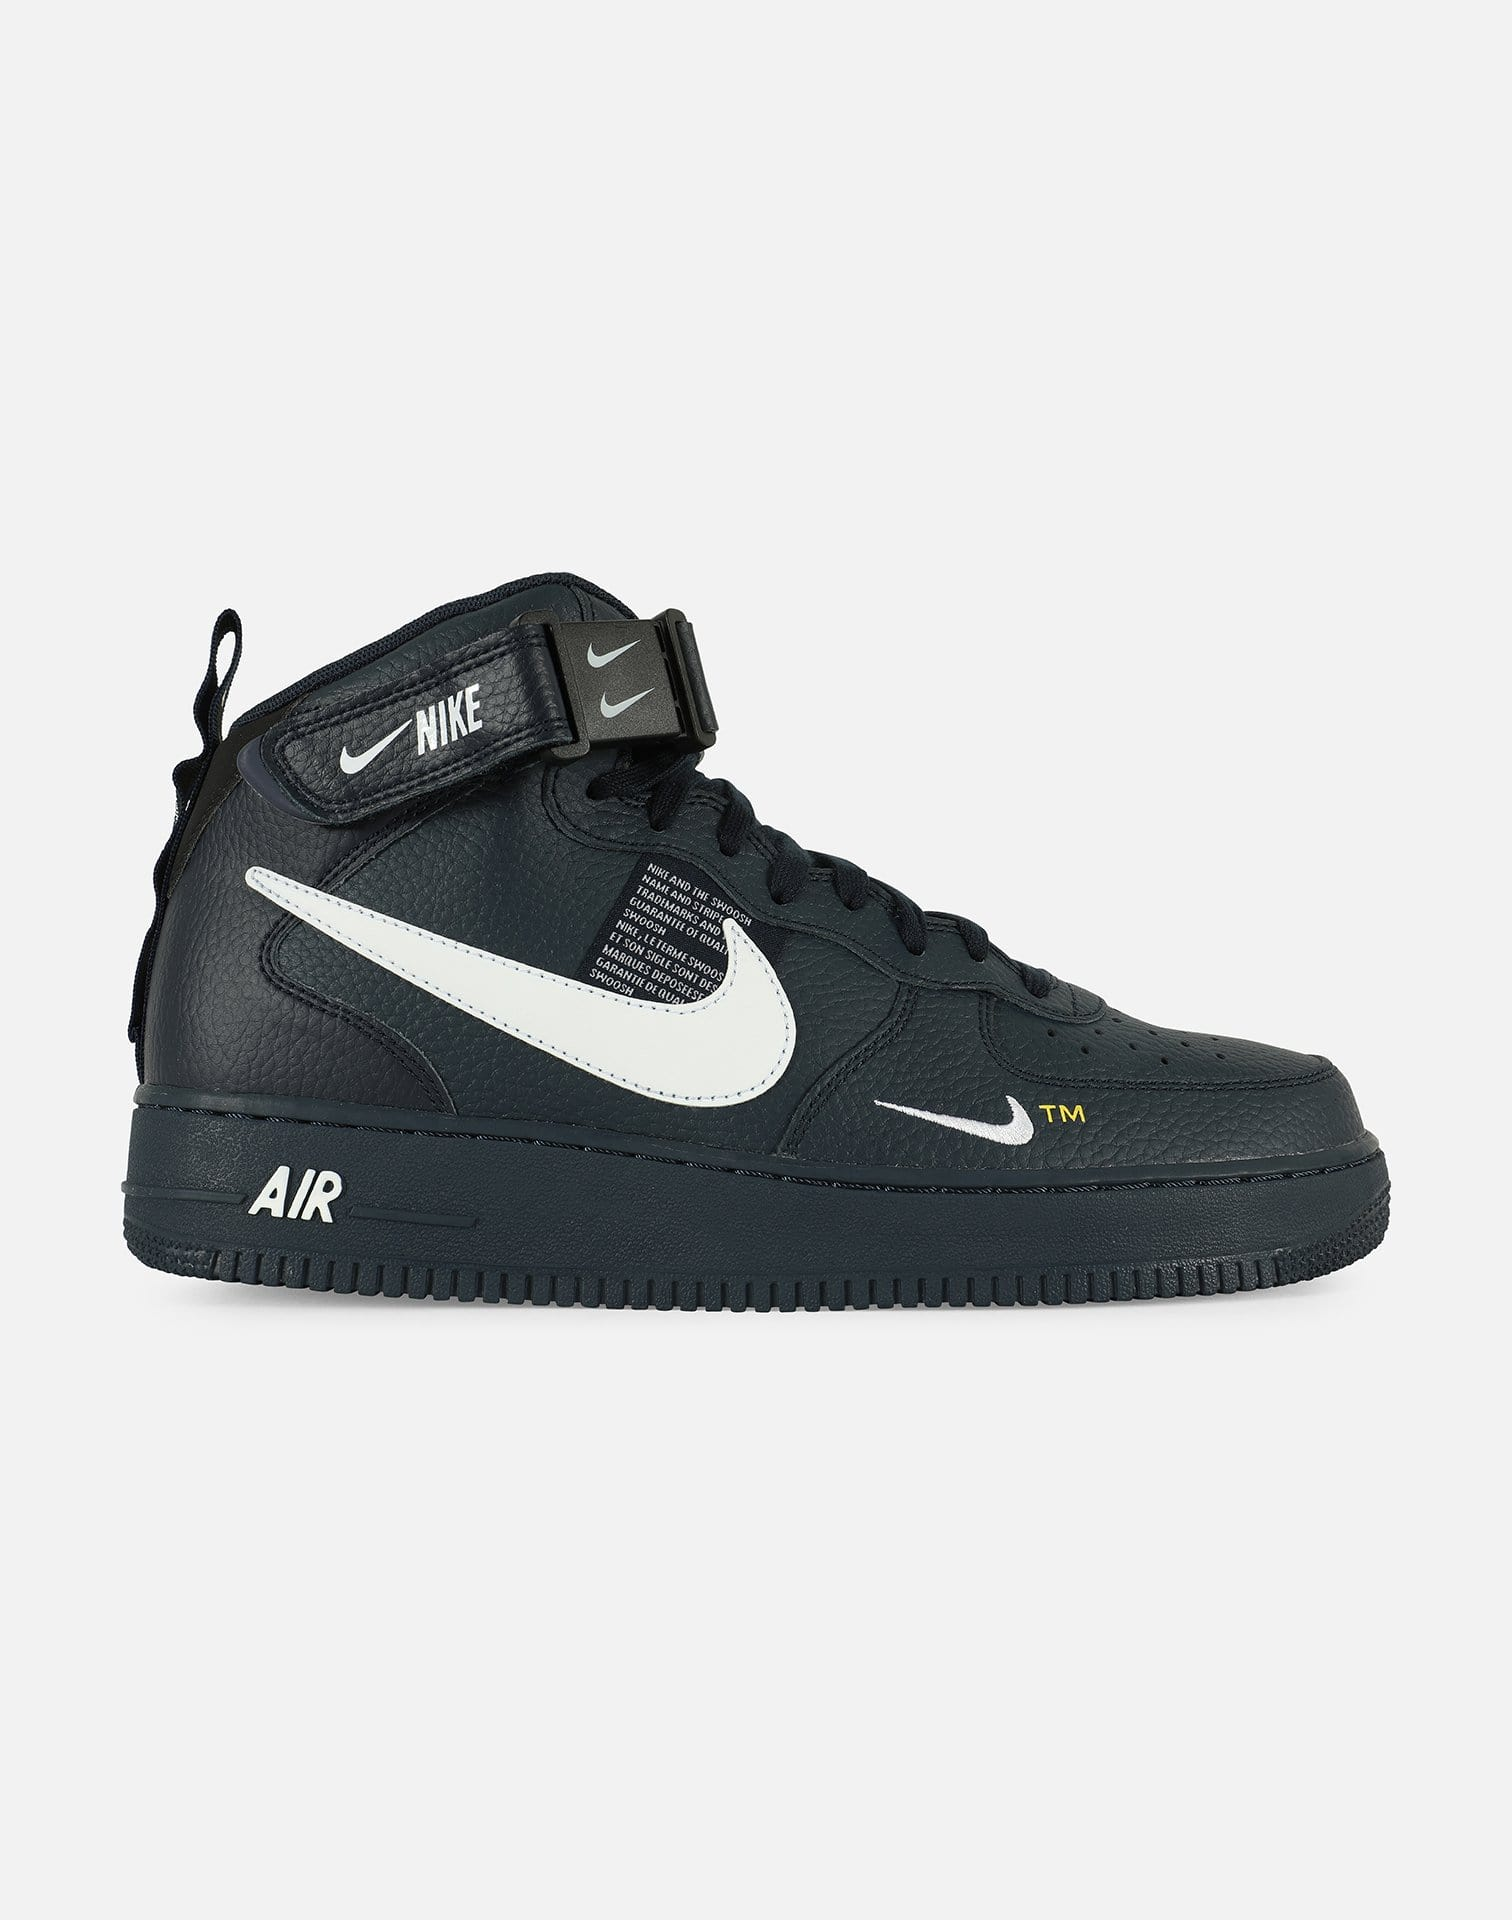 Nike Men's Air Force 1 '07 Mid LV8